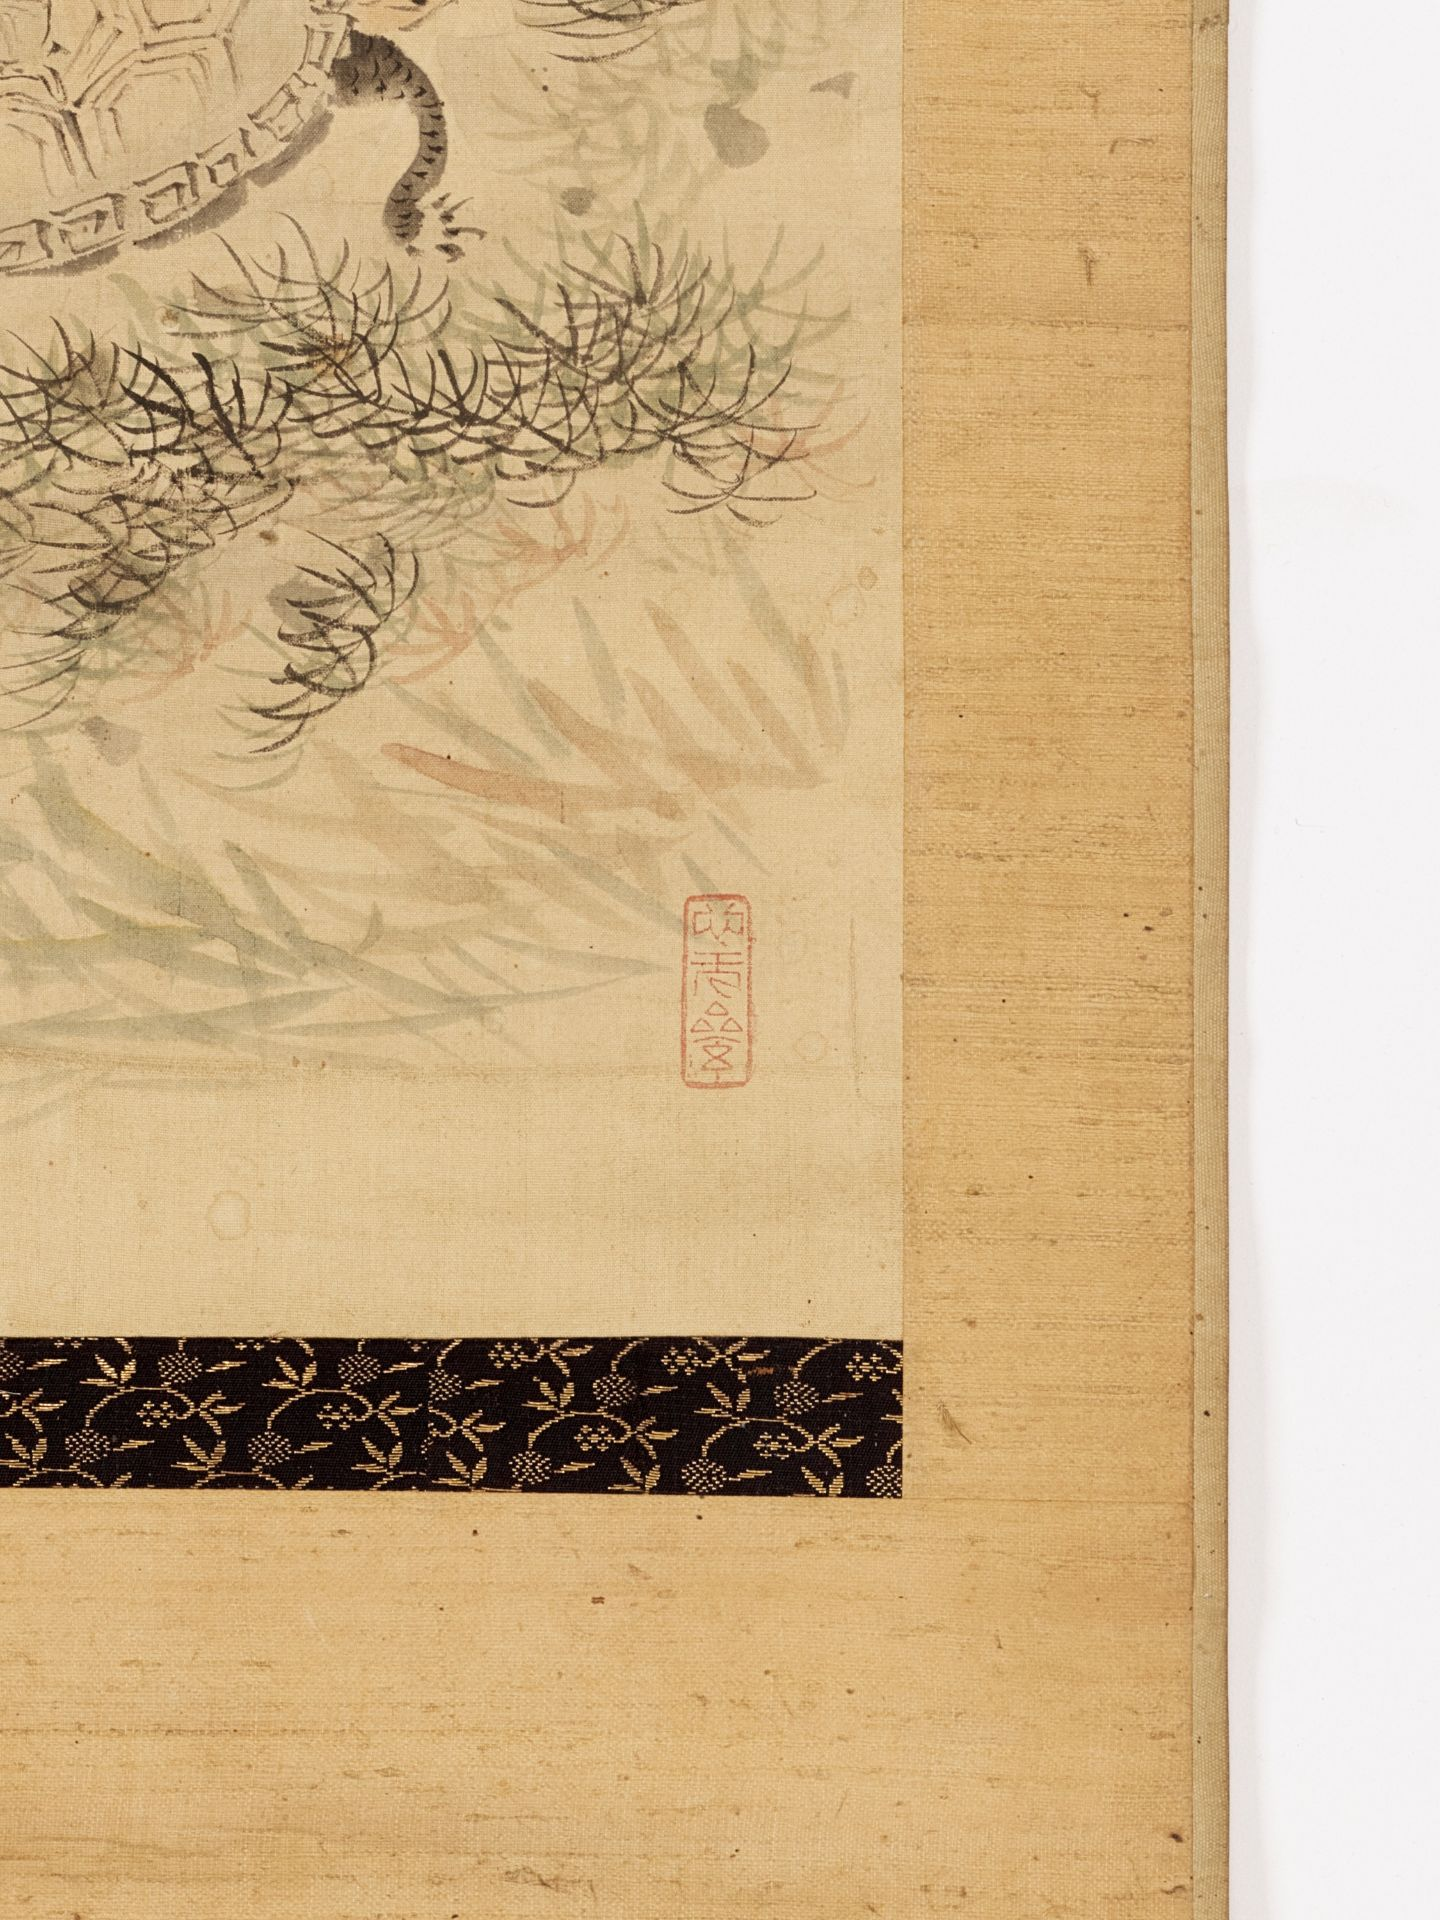 KISSO: A SCROLL PAINTING OF TURTLES - Image 5 of 6